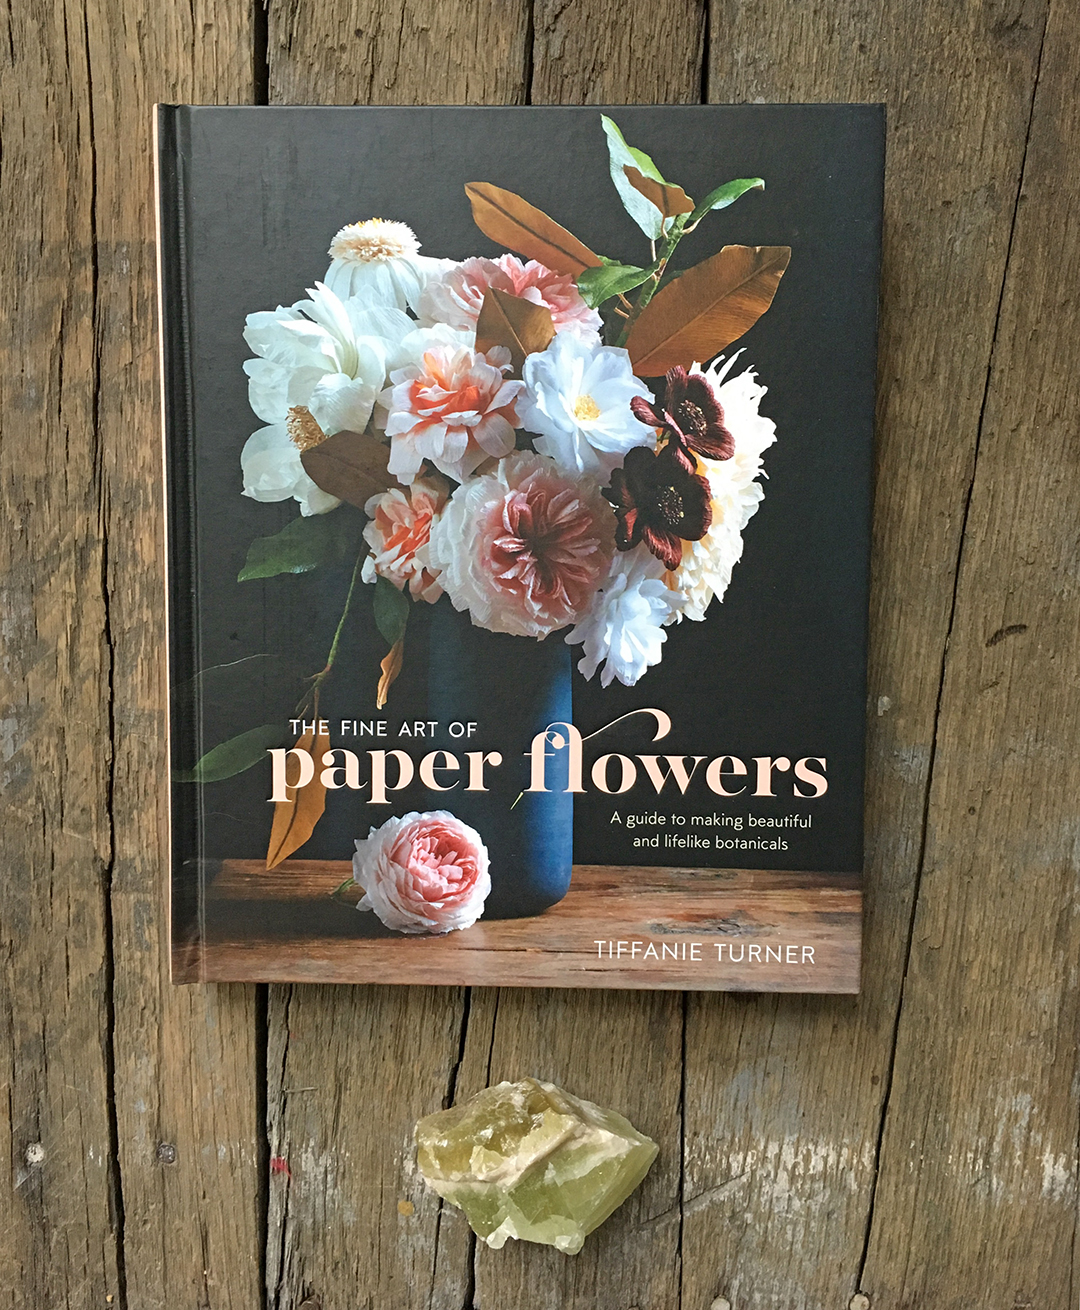 Learn how to make faux blooms with paper flowers diy the fine art of paper flowers by tiffanie turner paper flowers diy mightylinksfo